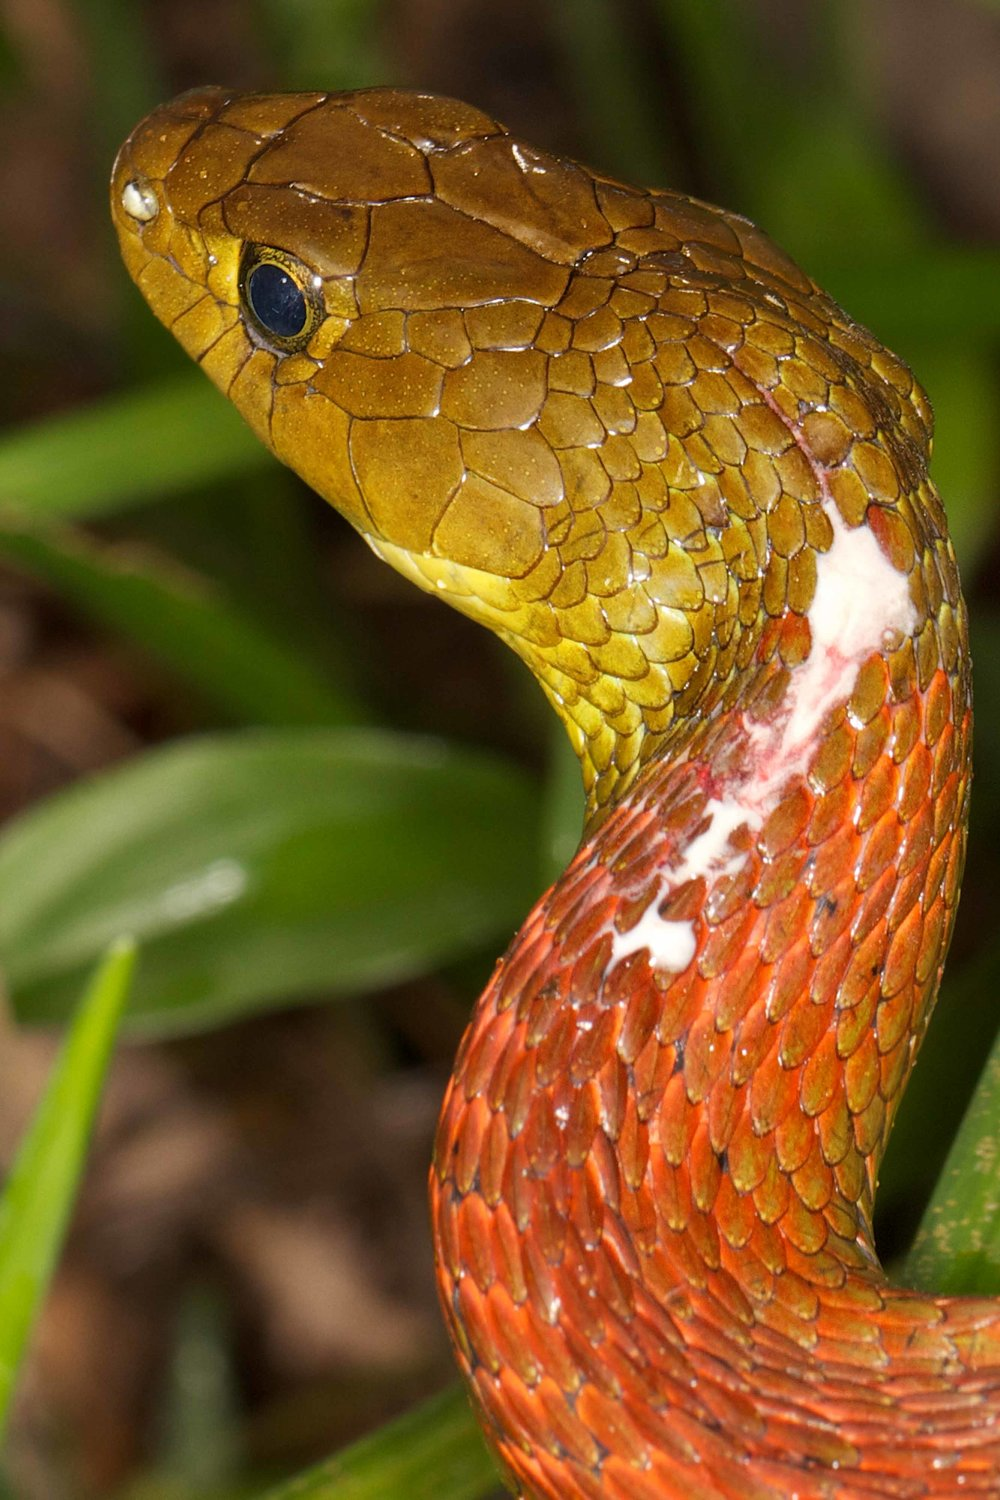 Copy of Red Neck Keelback - Poison Secretion